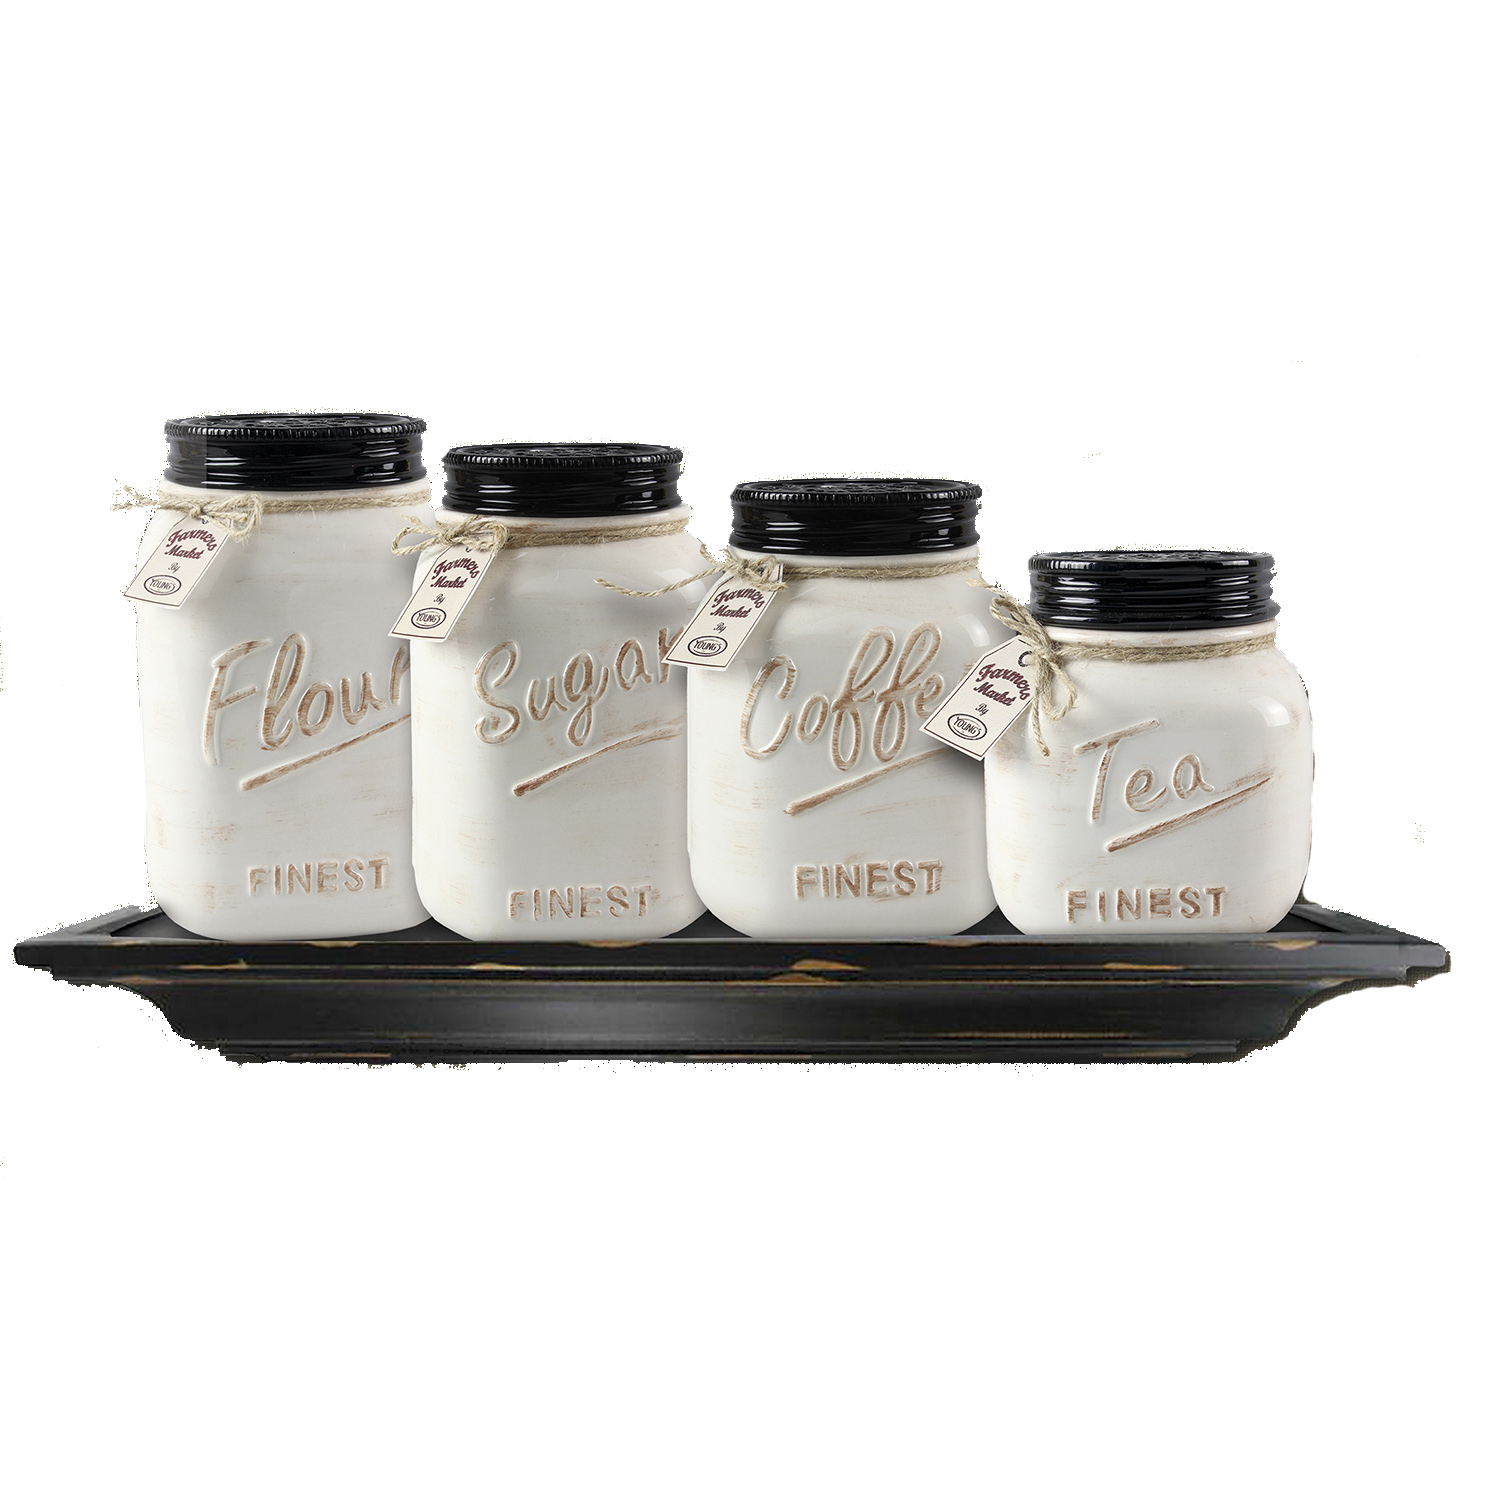 Set of 4 White Ceramic Mason Jars by ZallZo 570431578a3d6f0d0c8b46a0